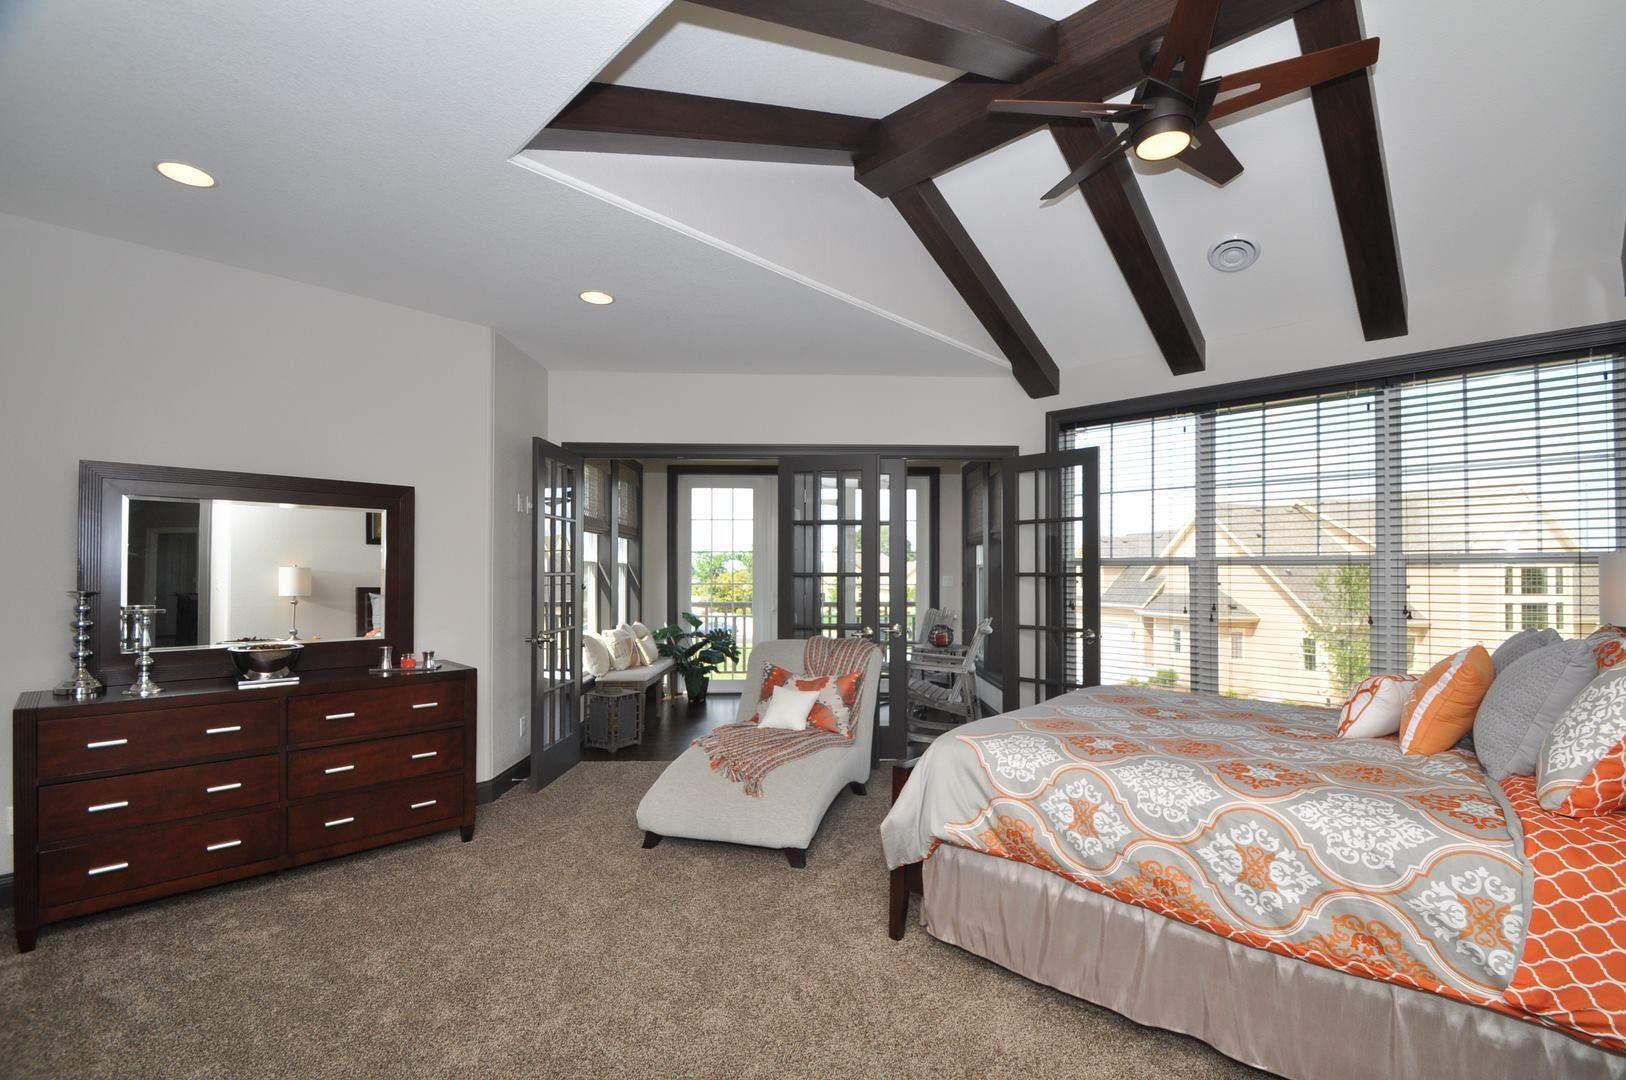 Luxury master bedroom floor plans  Kaerek Homes award winning Le Ciel  Parade Model Master Bedroom